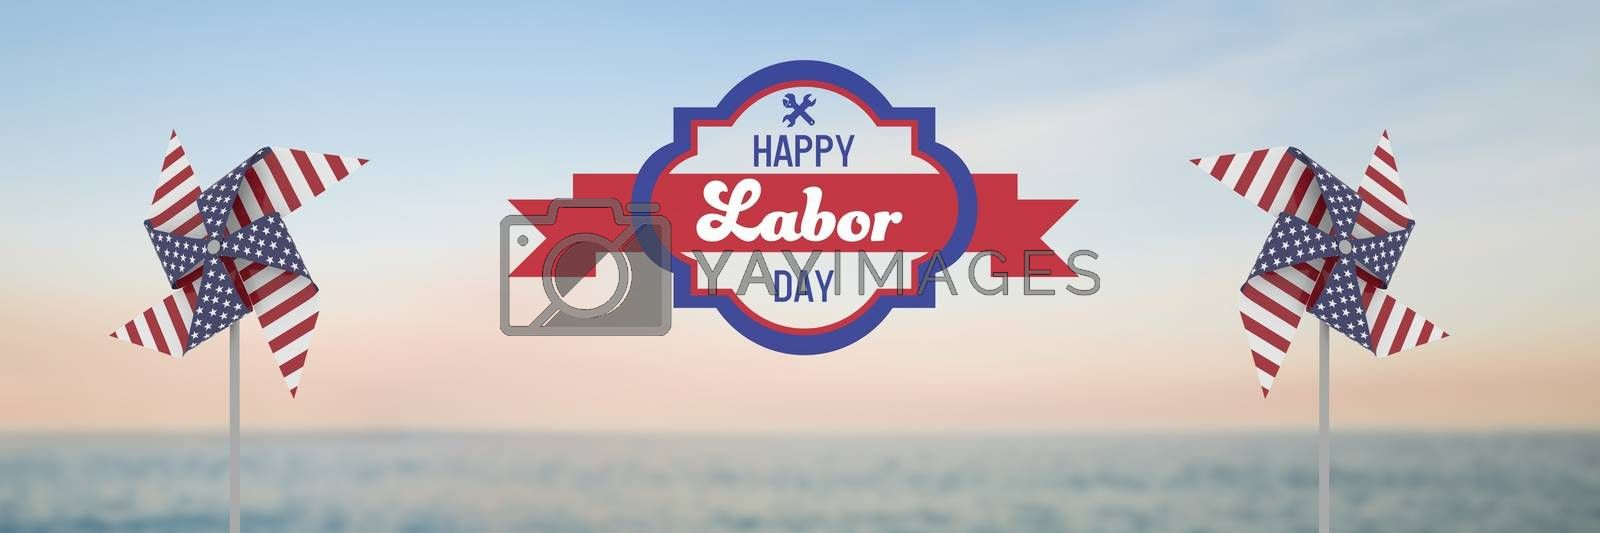 Happy labor day text and USA wind catchers in front of sea by Wavebreakmedia